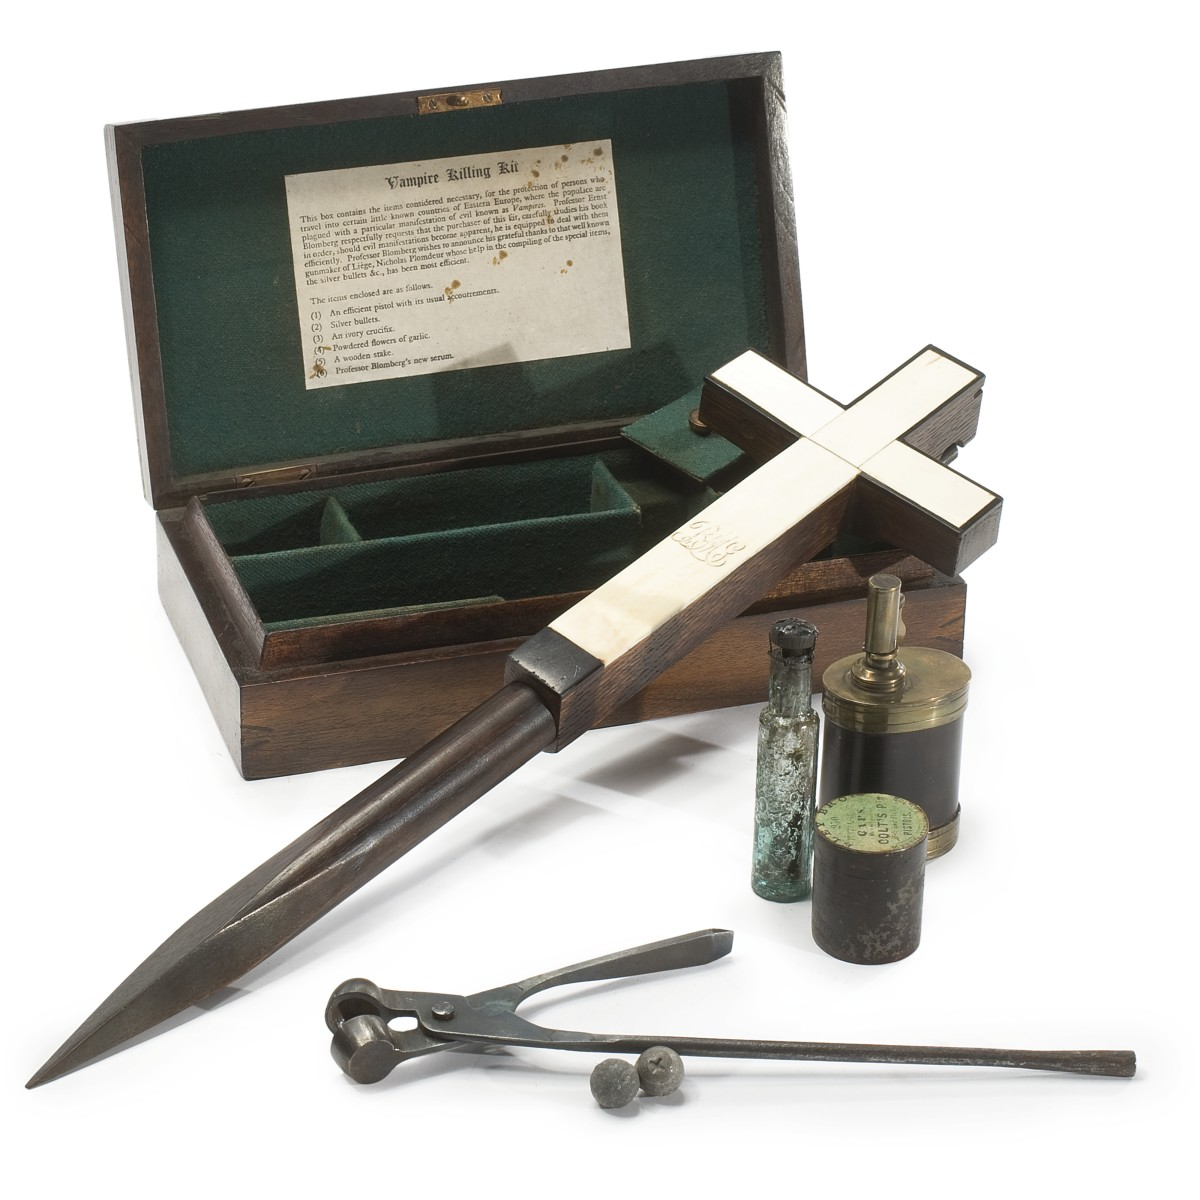 In 2011, Sotheby sold this kit for $17,500: a satiné wood, mahogany, ebony and ivory inlay kit, Continental, second half 19th century, containing an ivory and ebony inlay gun shaped crucifix, five silver bullets with struck hallmarks, a brass and patinated copper gun-powder flask, a sealed glass bottle, a bullet mold and a later colt's caps box by Eley Bro-London, the pistol-shaped crucifix with an engraved monogram BMG in cursive capital letters.